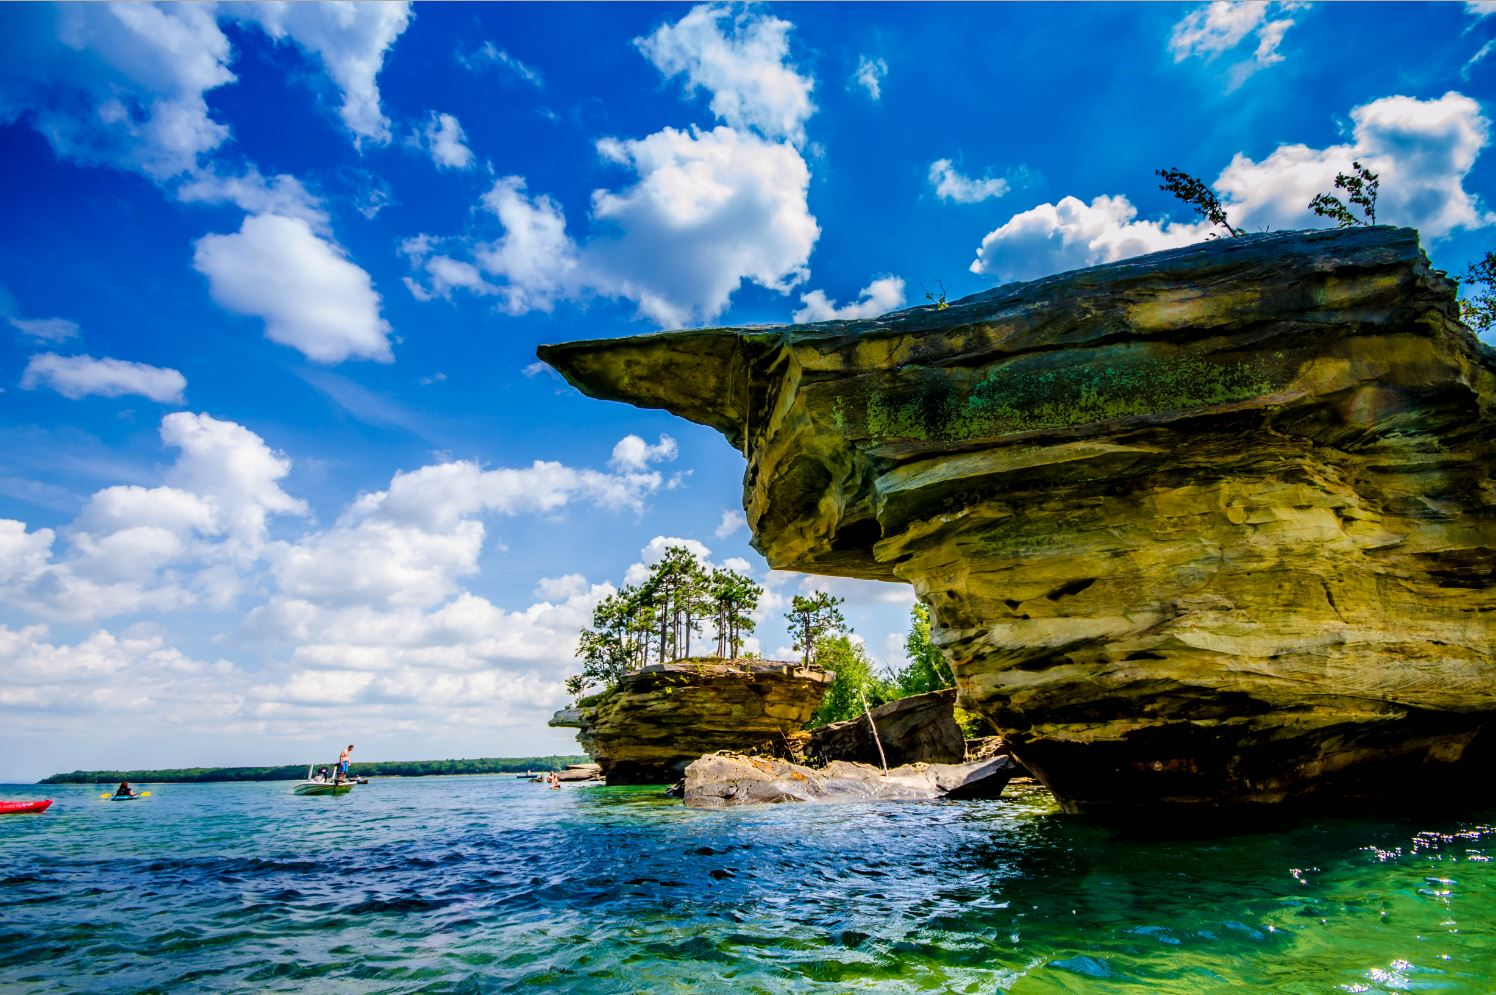 Thumb Nail Rock and Turnip Rock in Port Austin